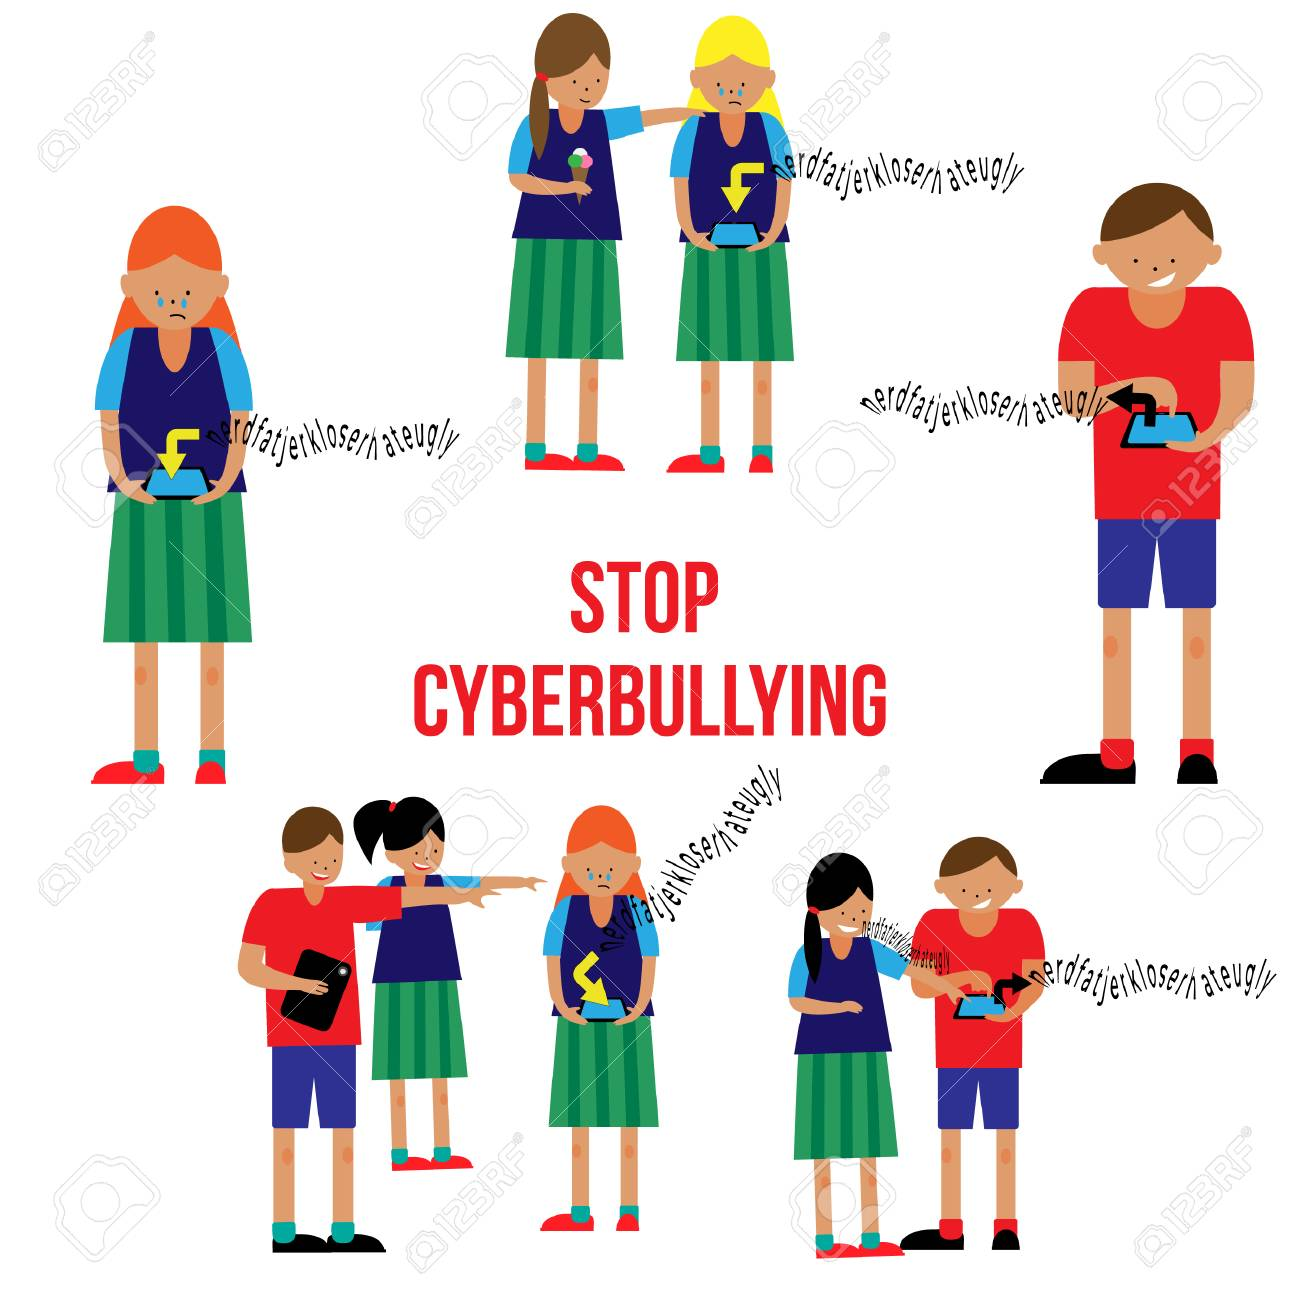 Stop cyberbullying poster in a flat style  Fine for educational